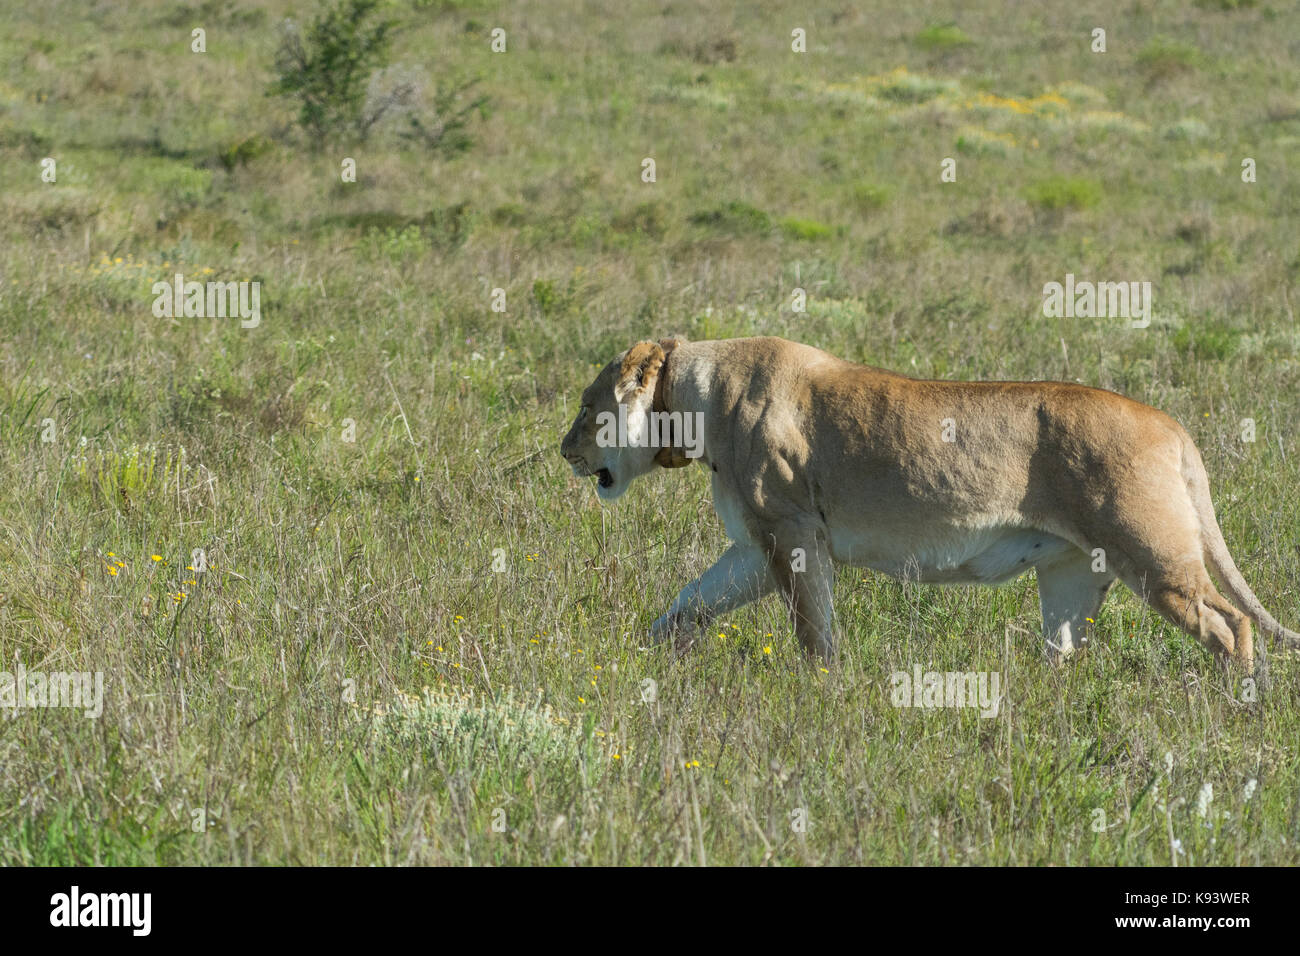 female lion at Addo Elephant National Park, Eastern Cape, South Africa Stock Photo